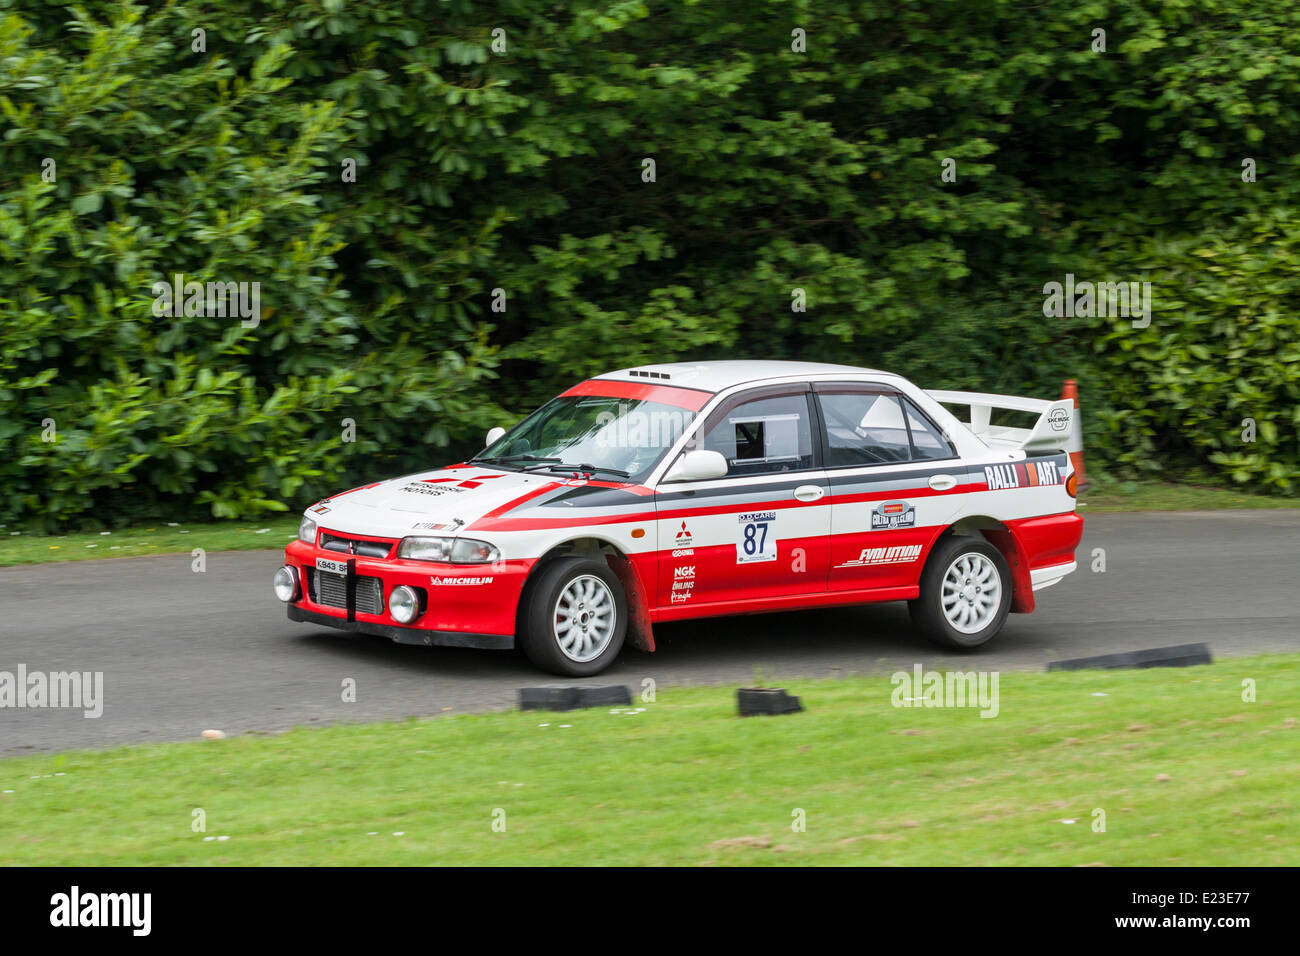 Cultra, Holywood, Northern Ireland. 14 June 2014. Cultra Hillclimb. 1992 Mitsubishi Evo 1, Scott Leitch. Credit: - Stock Image